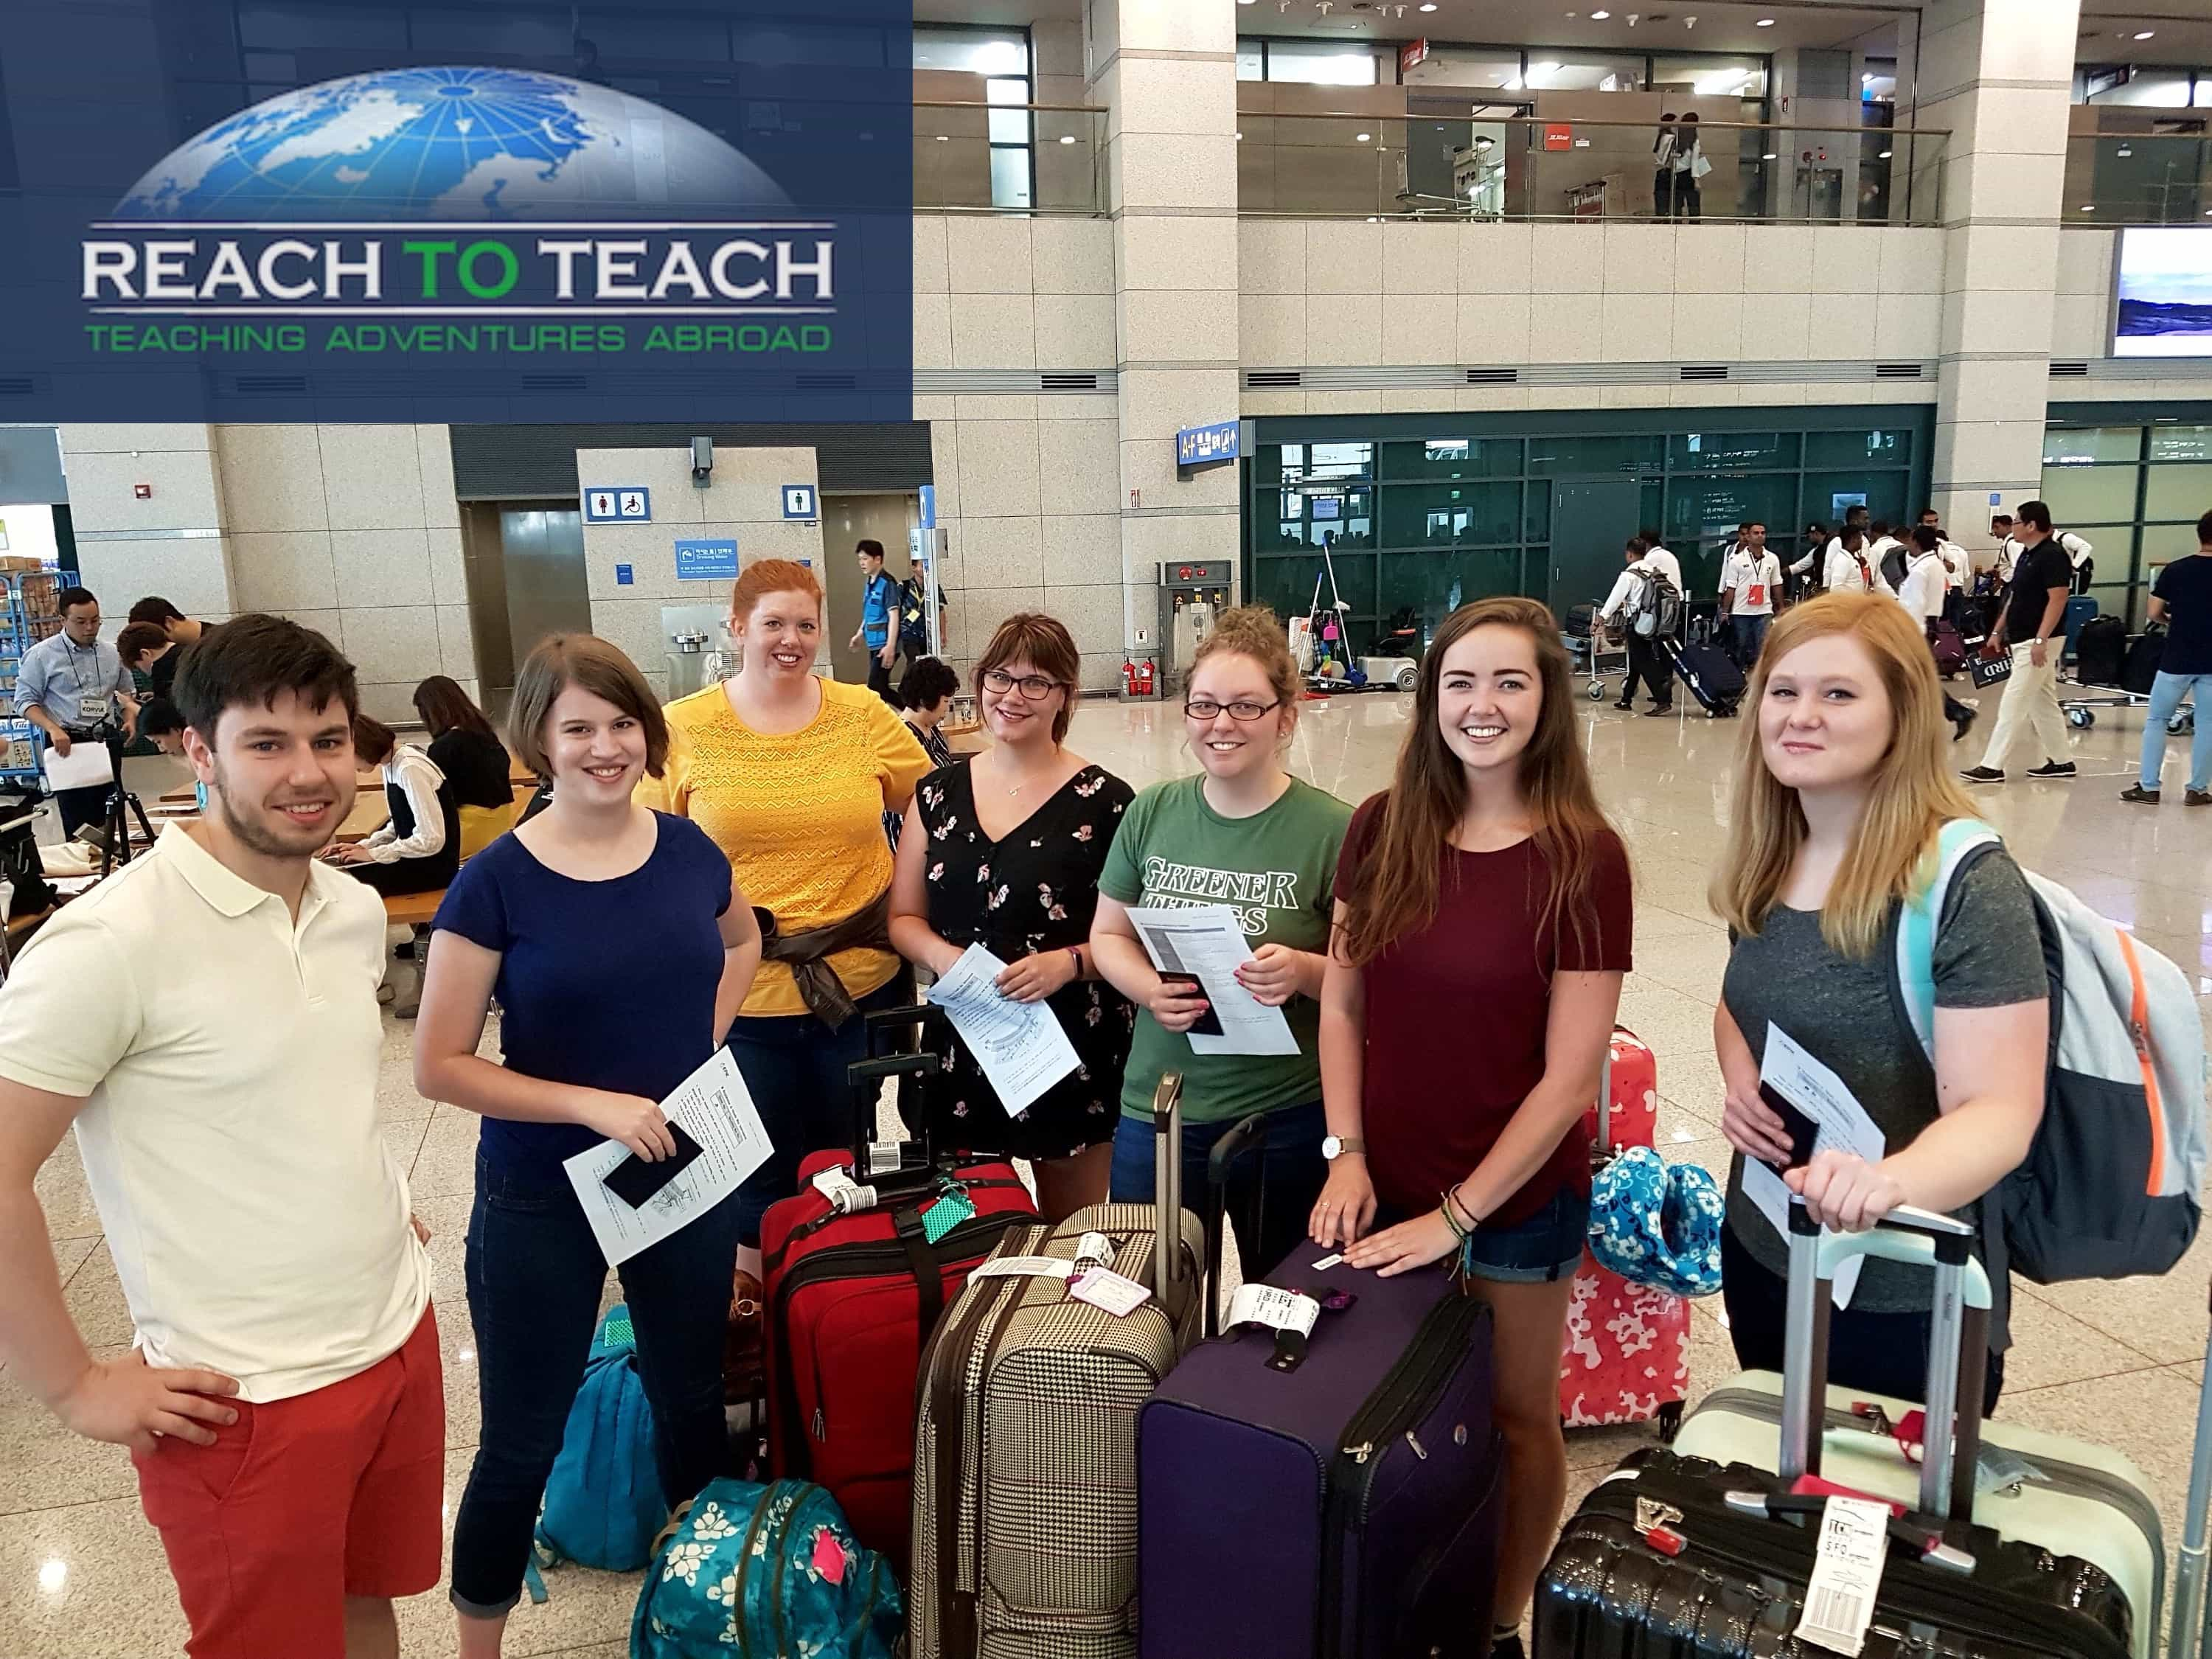 a group of new TEFL teachers arrived at the airport with reach to teach